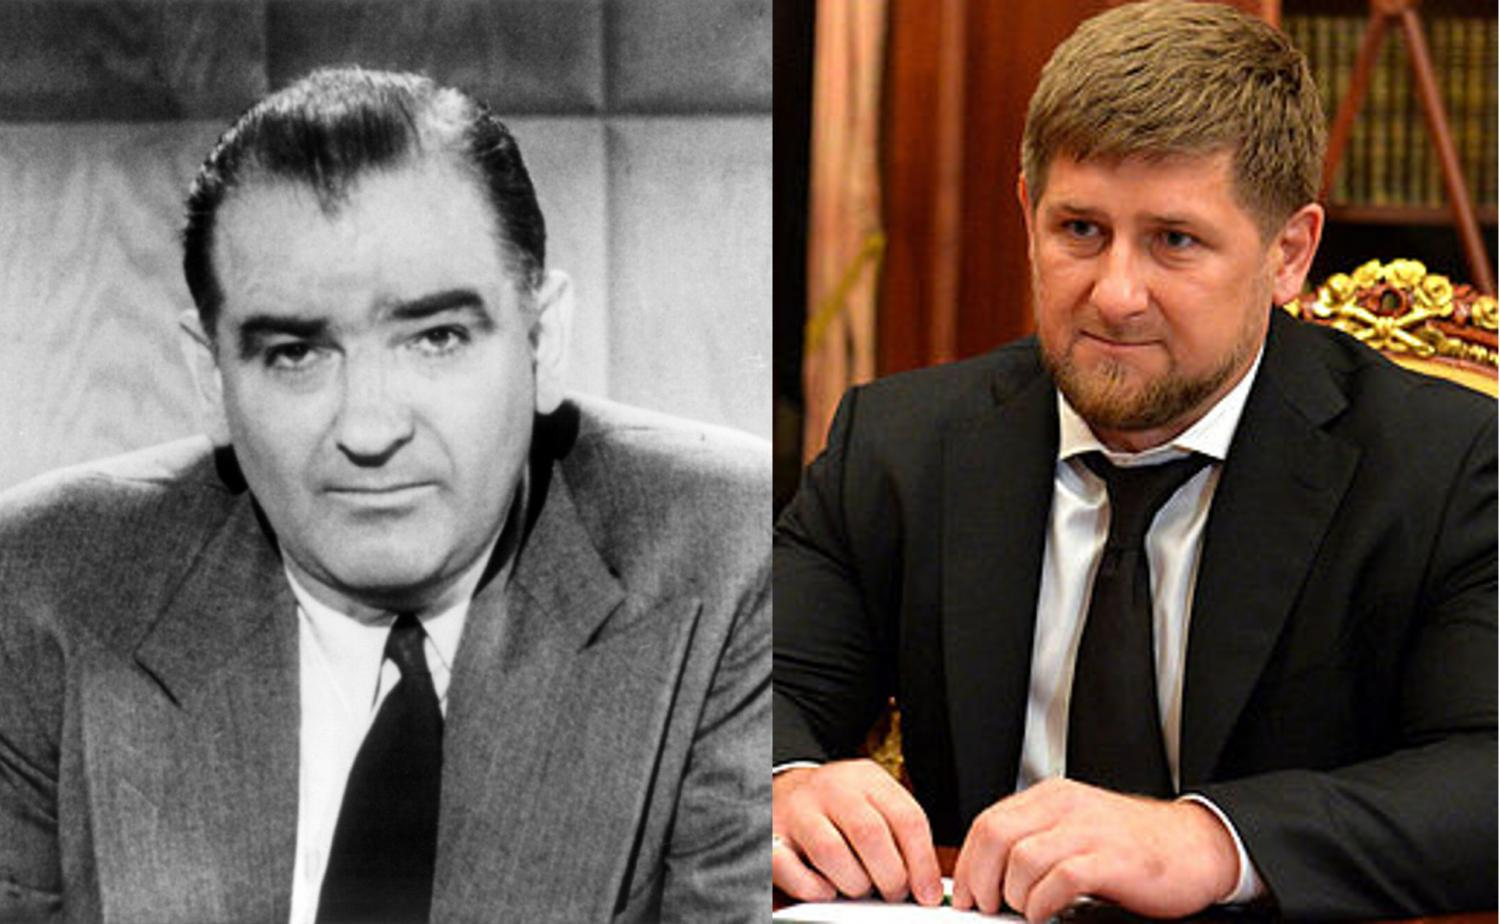 Senator Joseph McCarthy (left) and Ramzan Kadyrov, Head of the Chechen Republic (right).